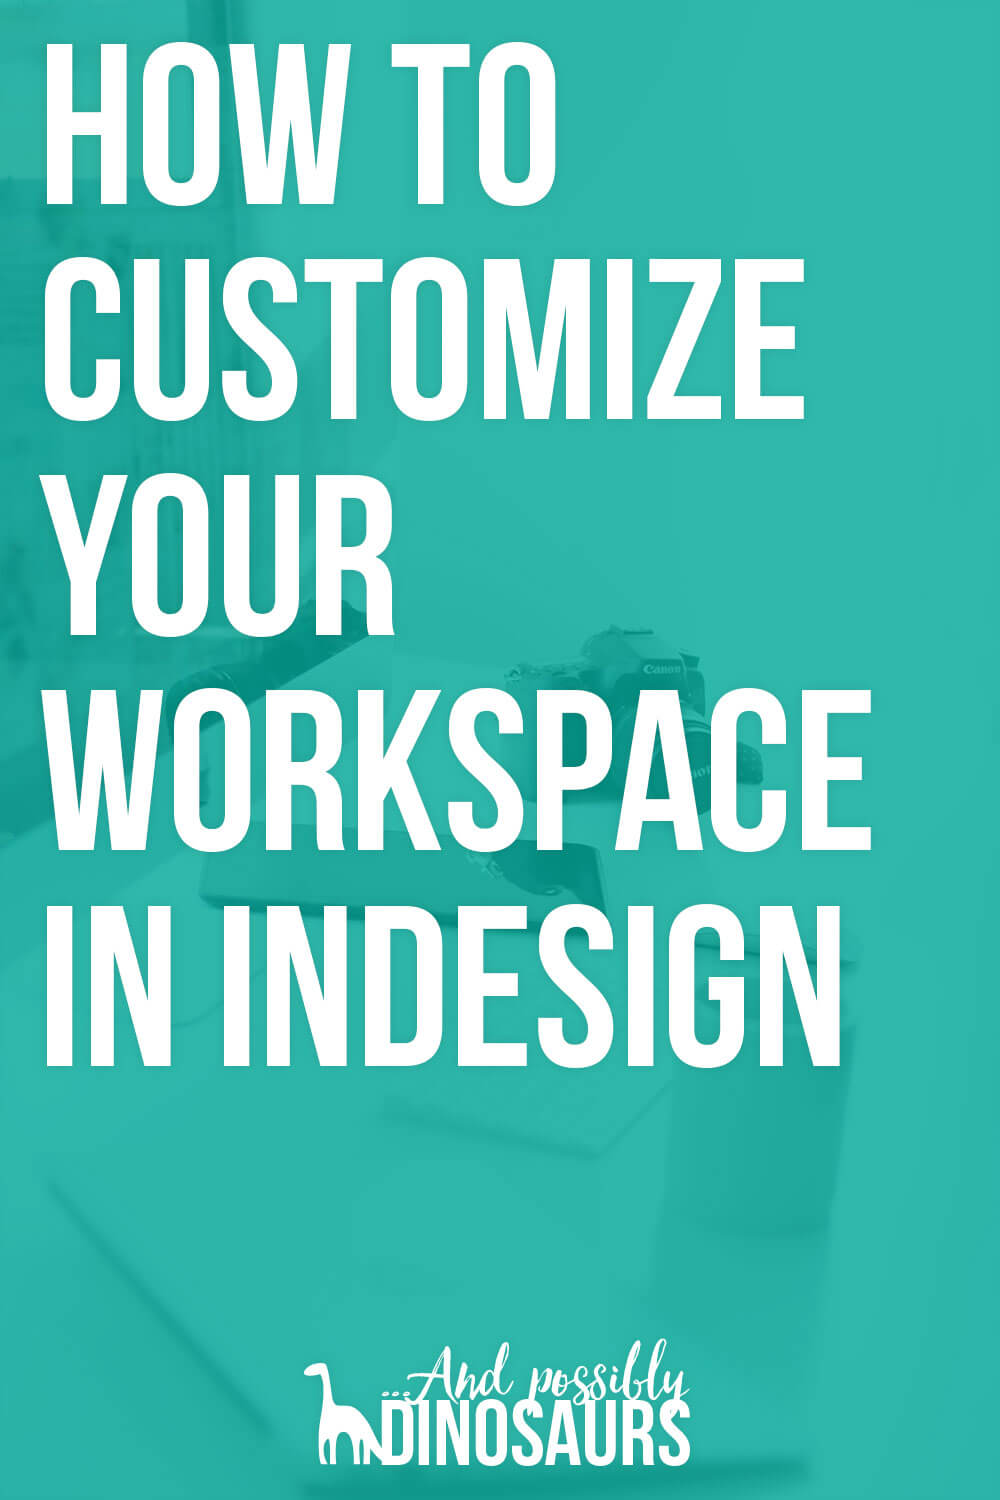 Are you constantly scrambling around InDesign trying to find the right tools? You should set up a custom workspace in InDesign! You can save all of your sidebar controls, fonts, and swatches so they're all ready for you when you open up the program. Click through for the tutorial!